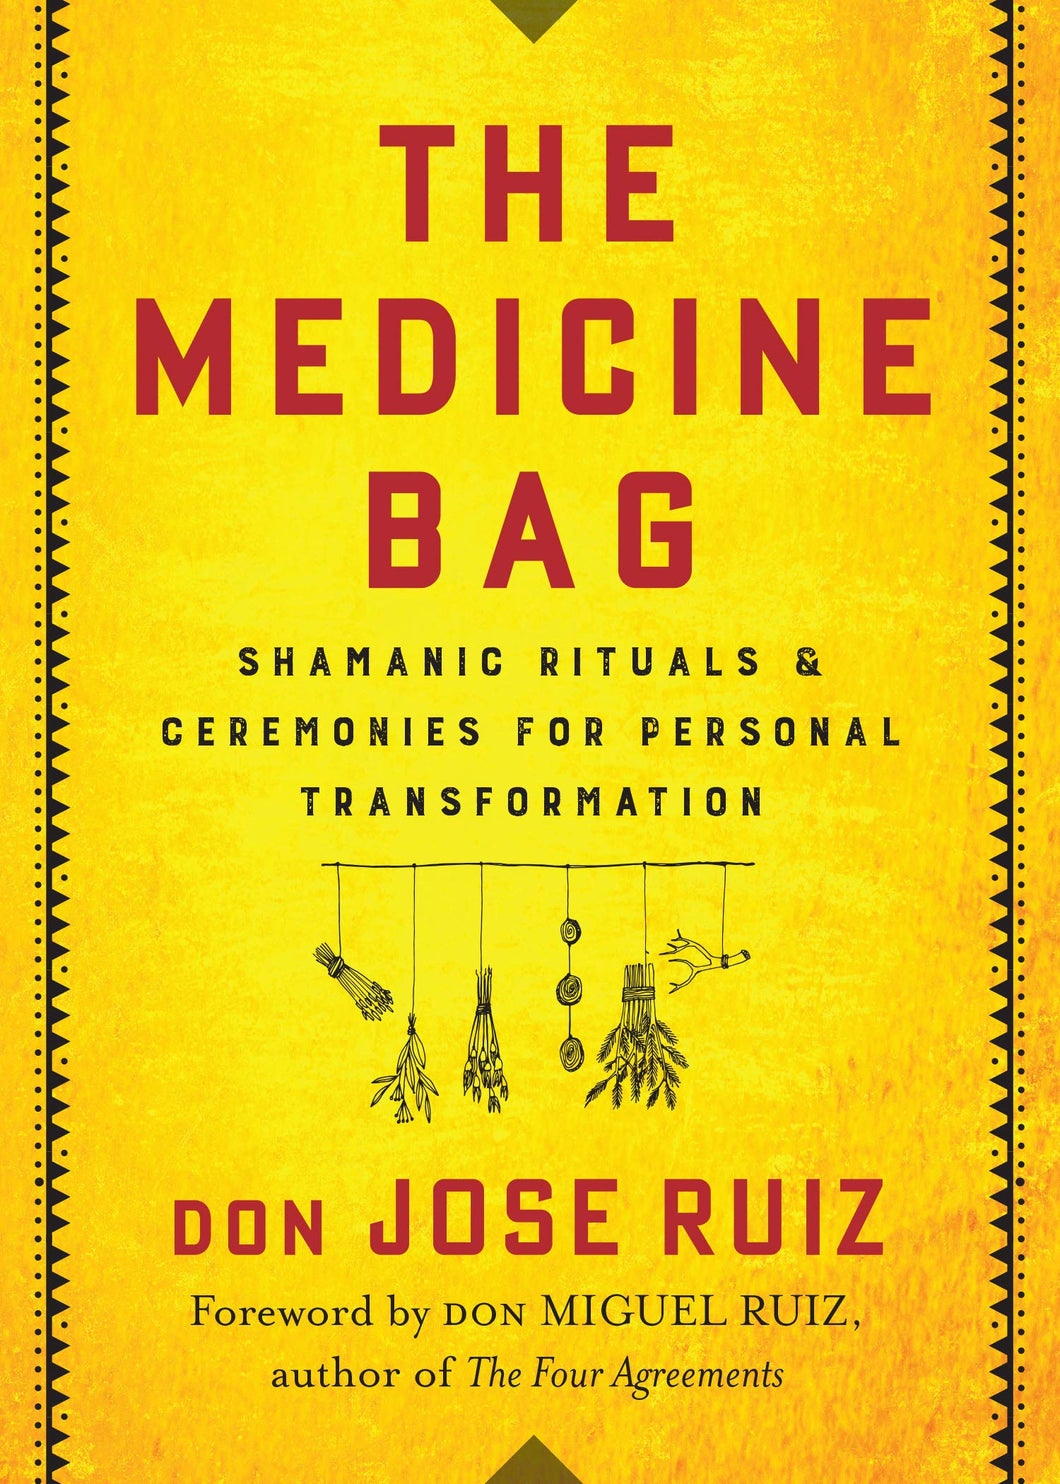 The Medicine Bag: Shamanic Rituals & Ceremonies for Personal Transformation by Don Jose Ruiz